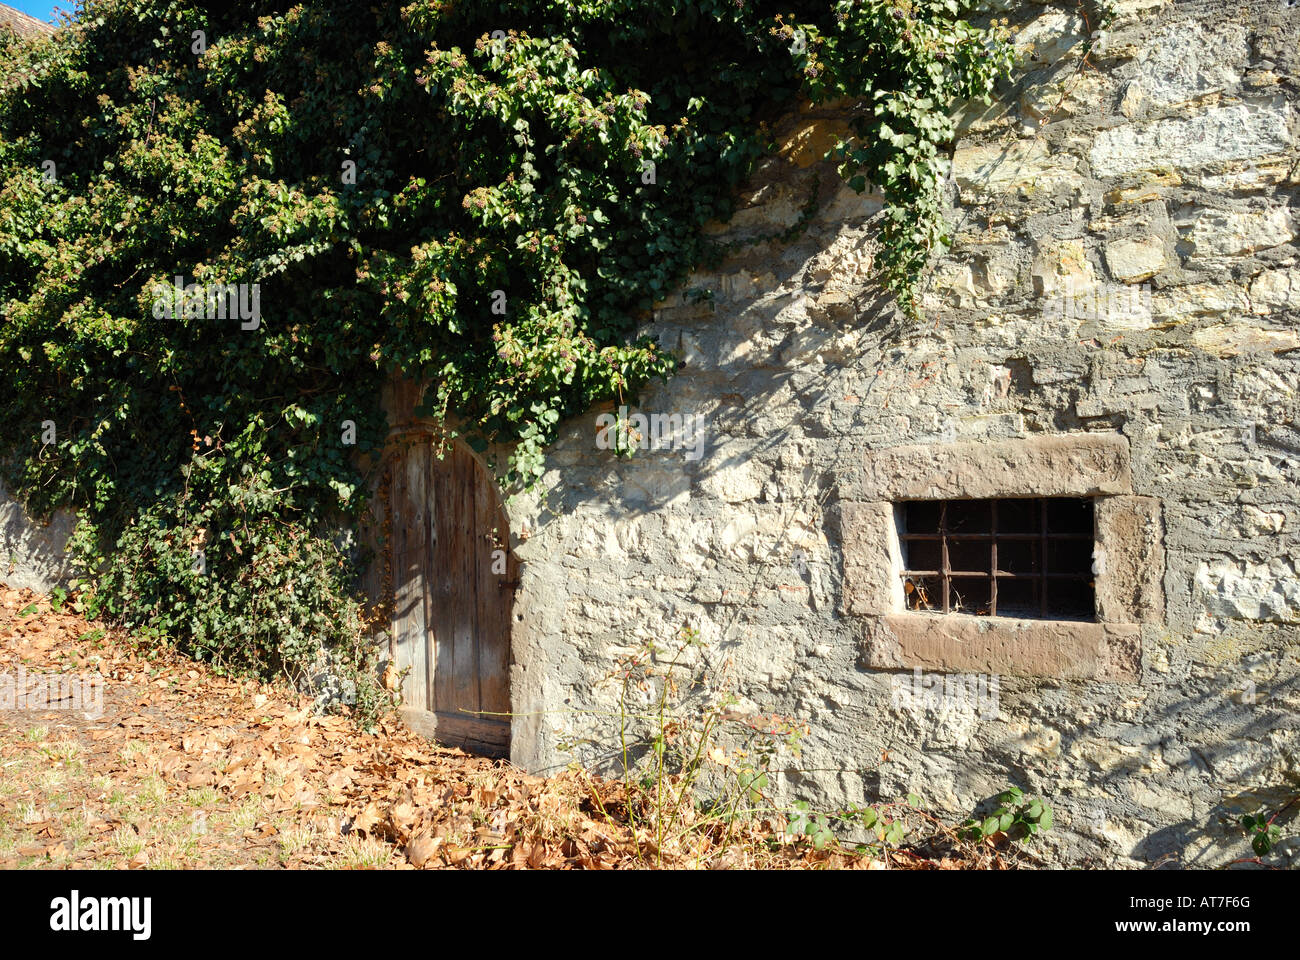 Wooden door in ancient medieval mediaeval stone wall framed window plants poson ivy hanging dead leaves ground nature - Stock Image